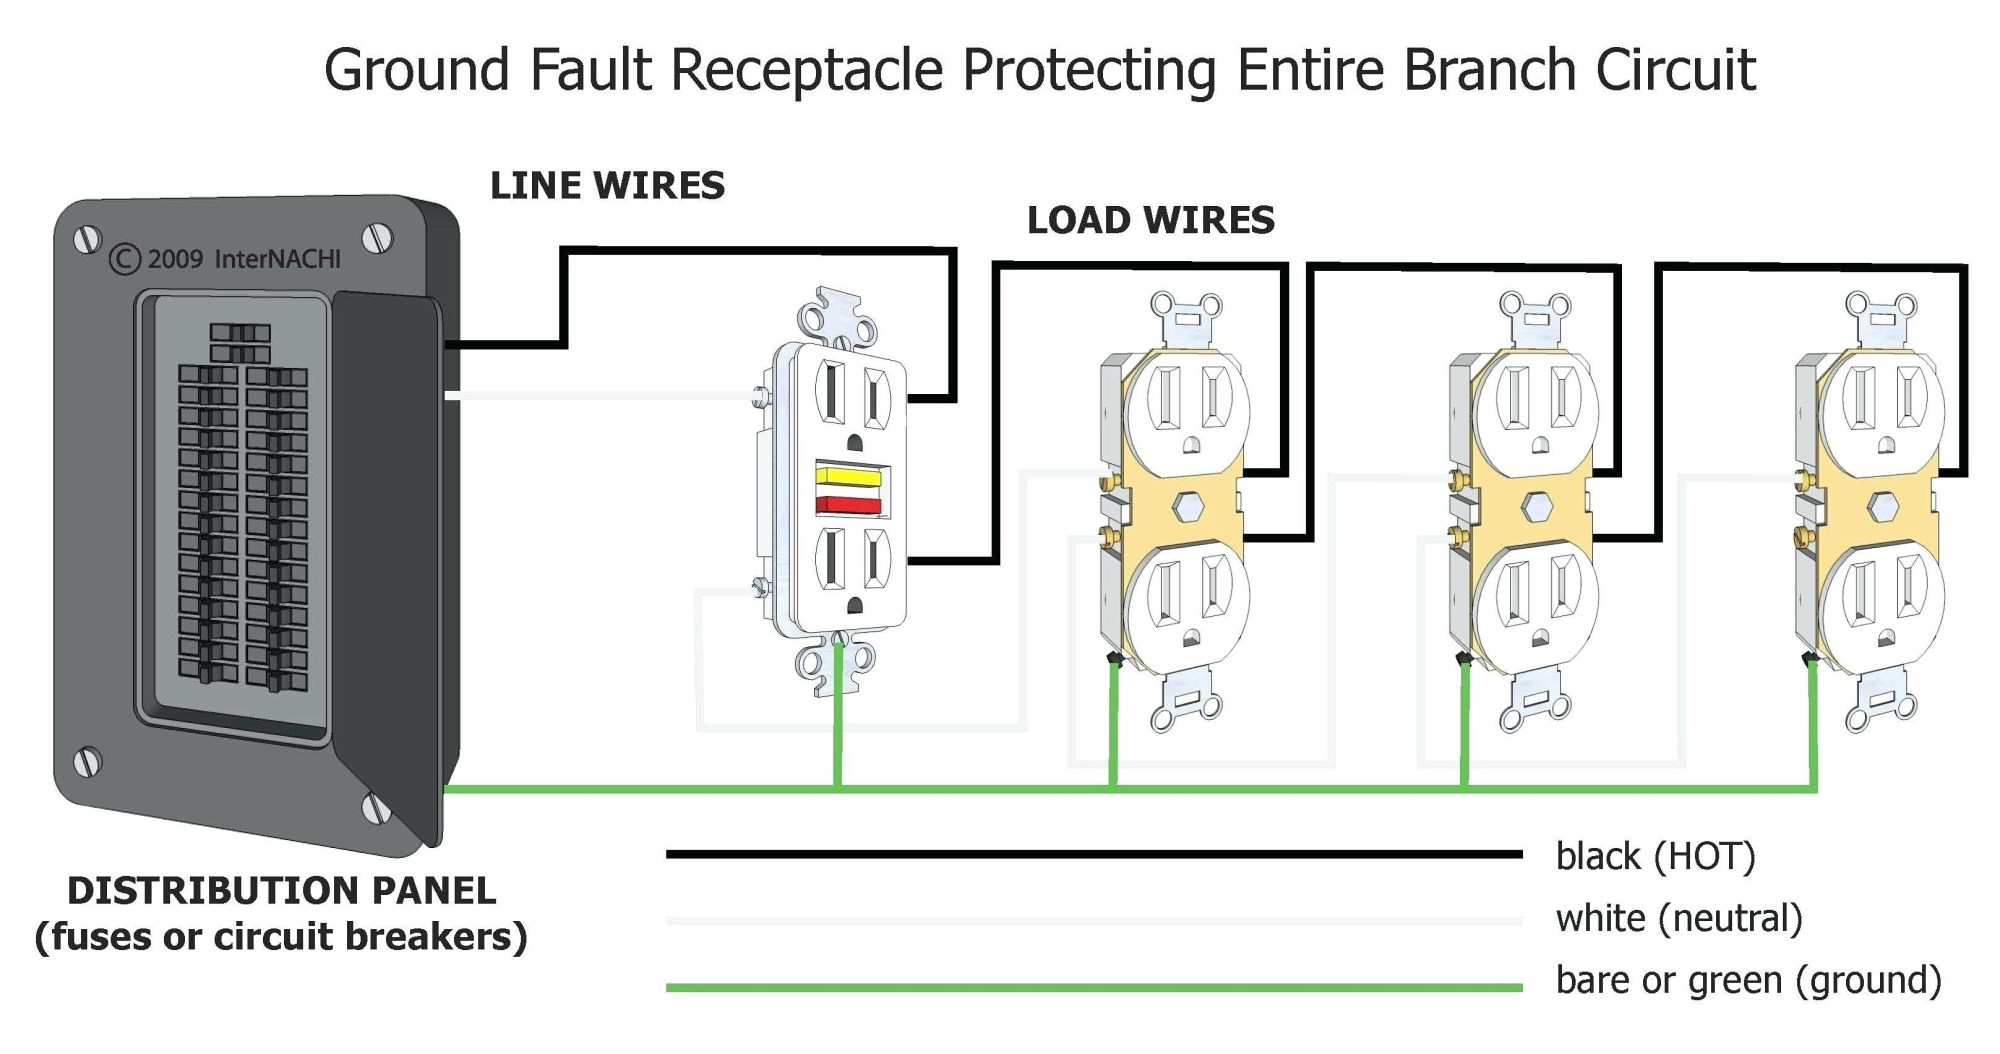 Lucent Rj9 Wiring Diagram - Fusebox and Wiring Diagram layout-end - layout -end.sirtarghe.itdiagram database